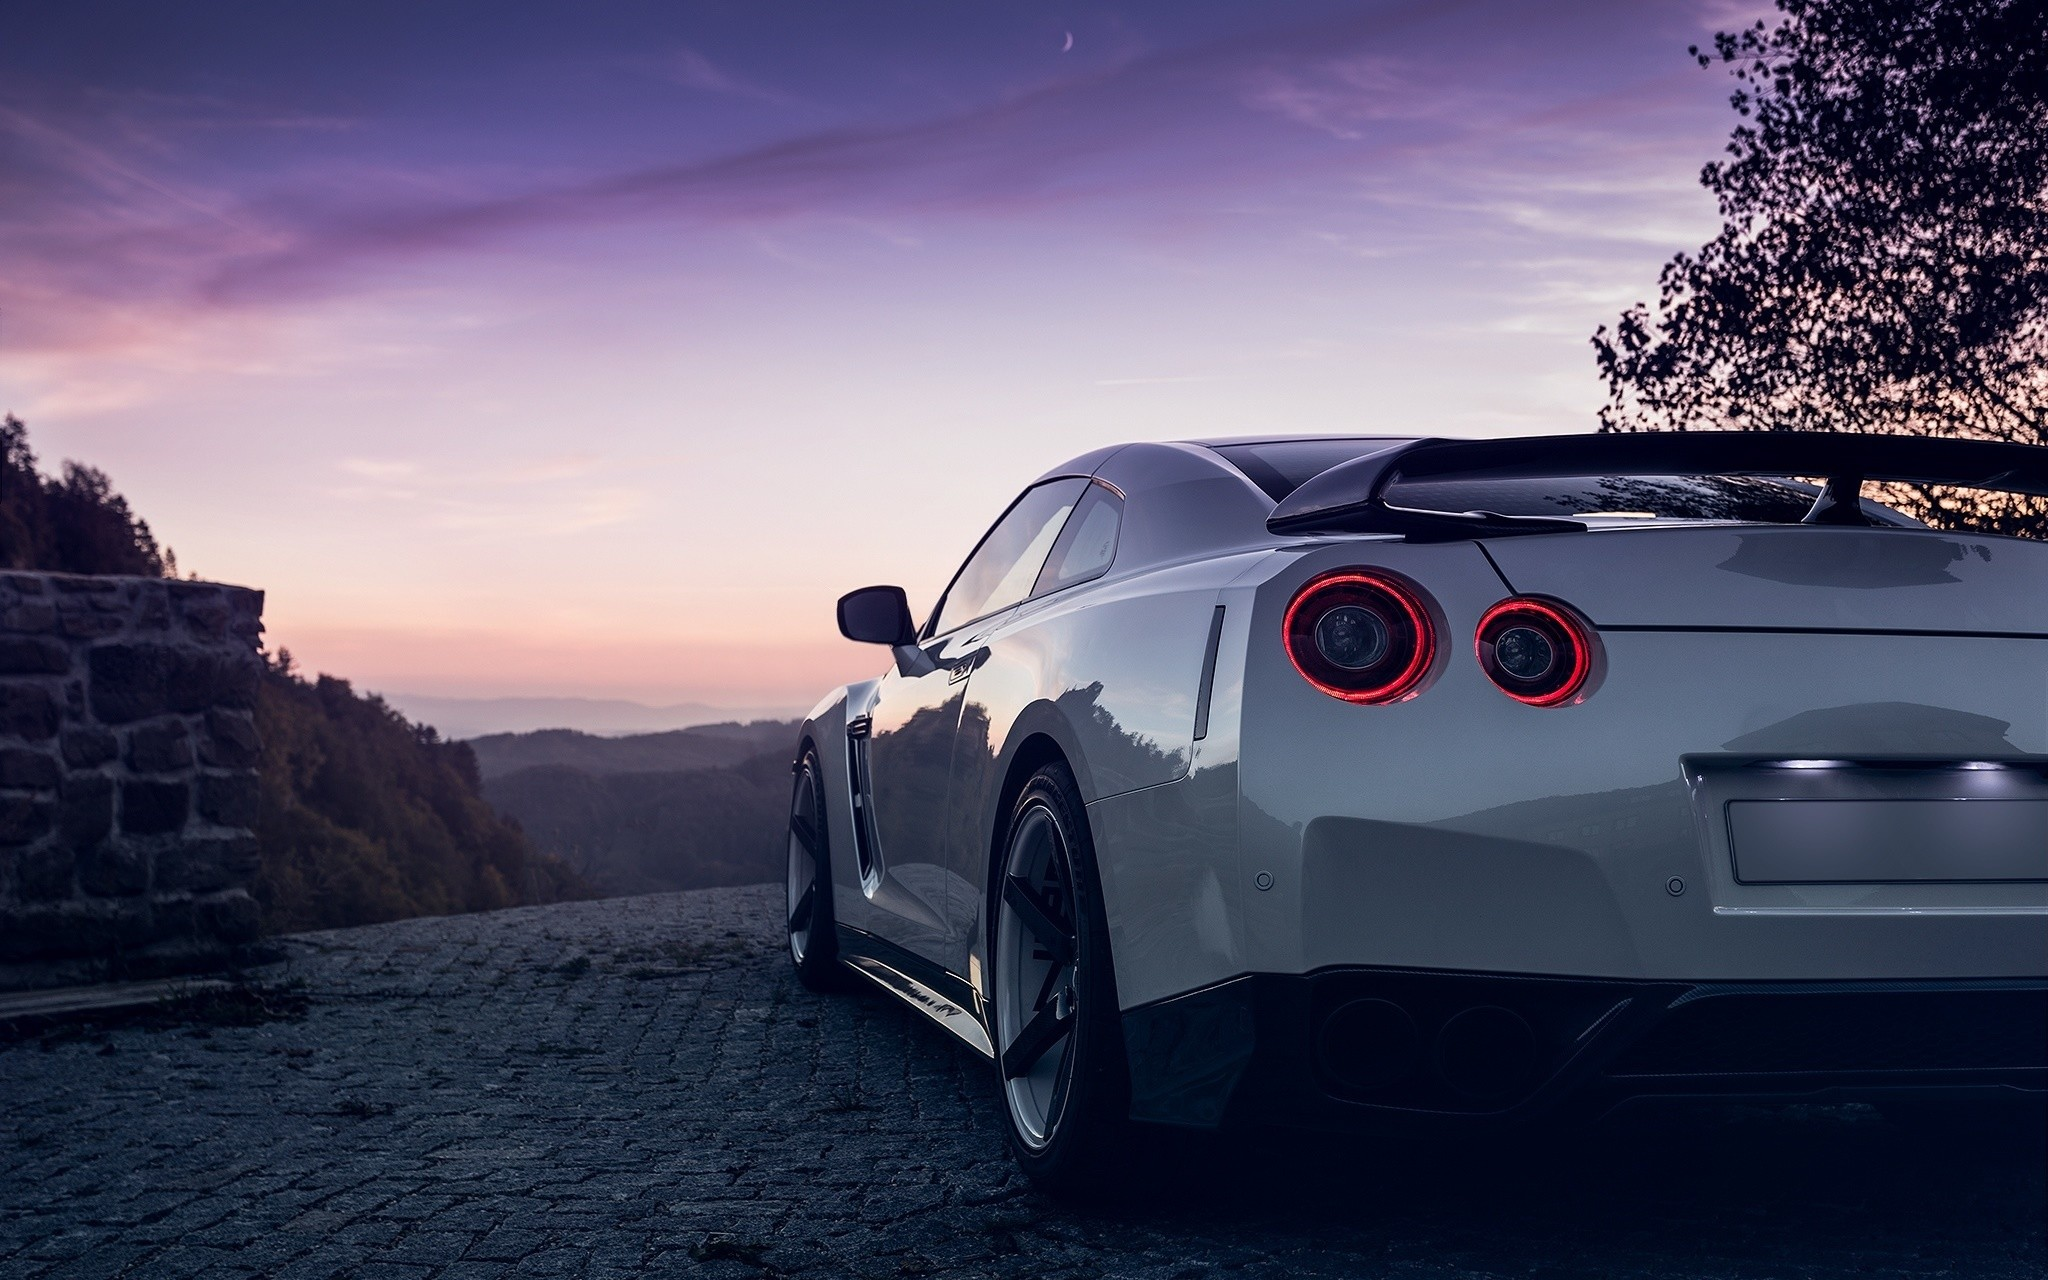 … white nissan gtr wallpapers iphone bhstorm com …